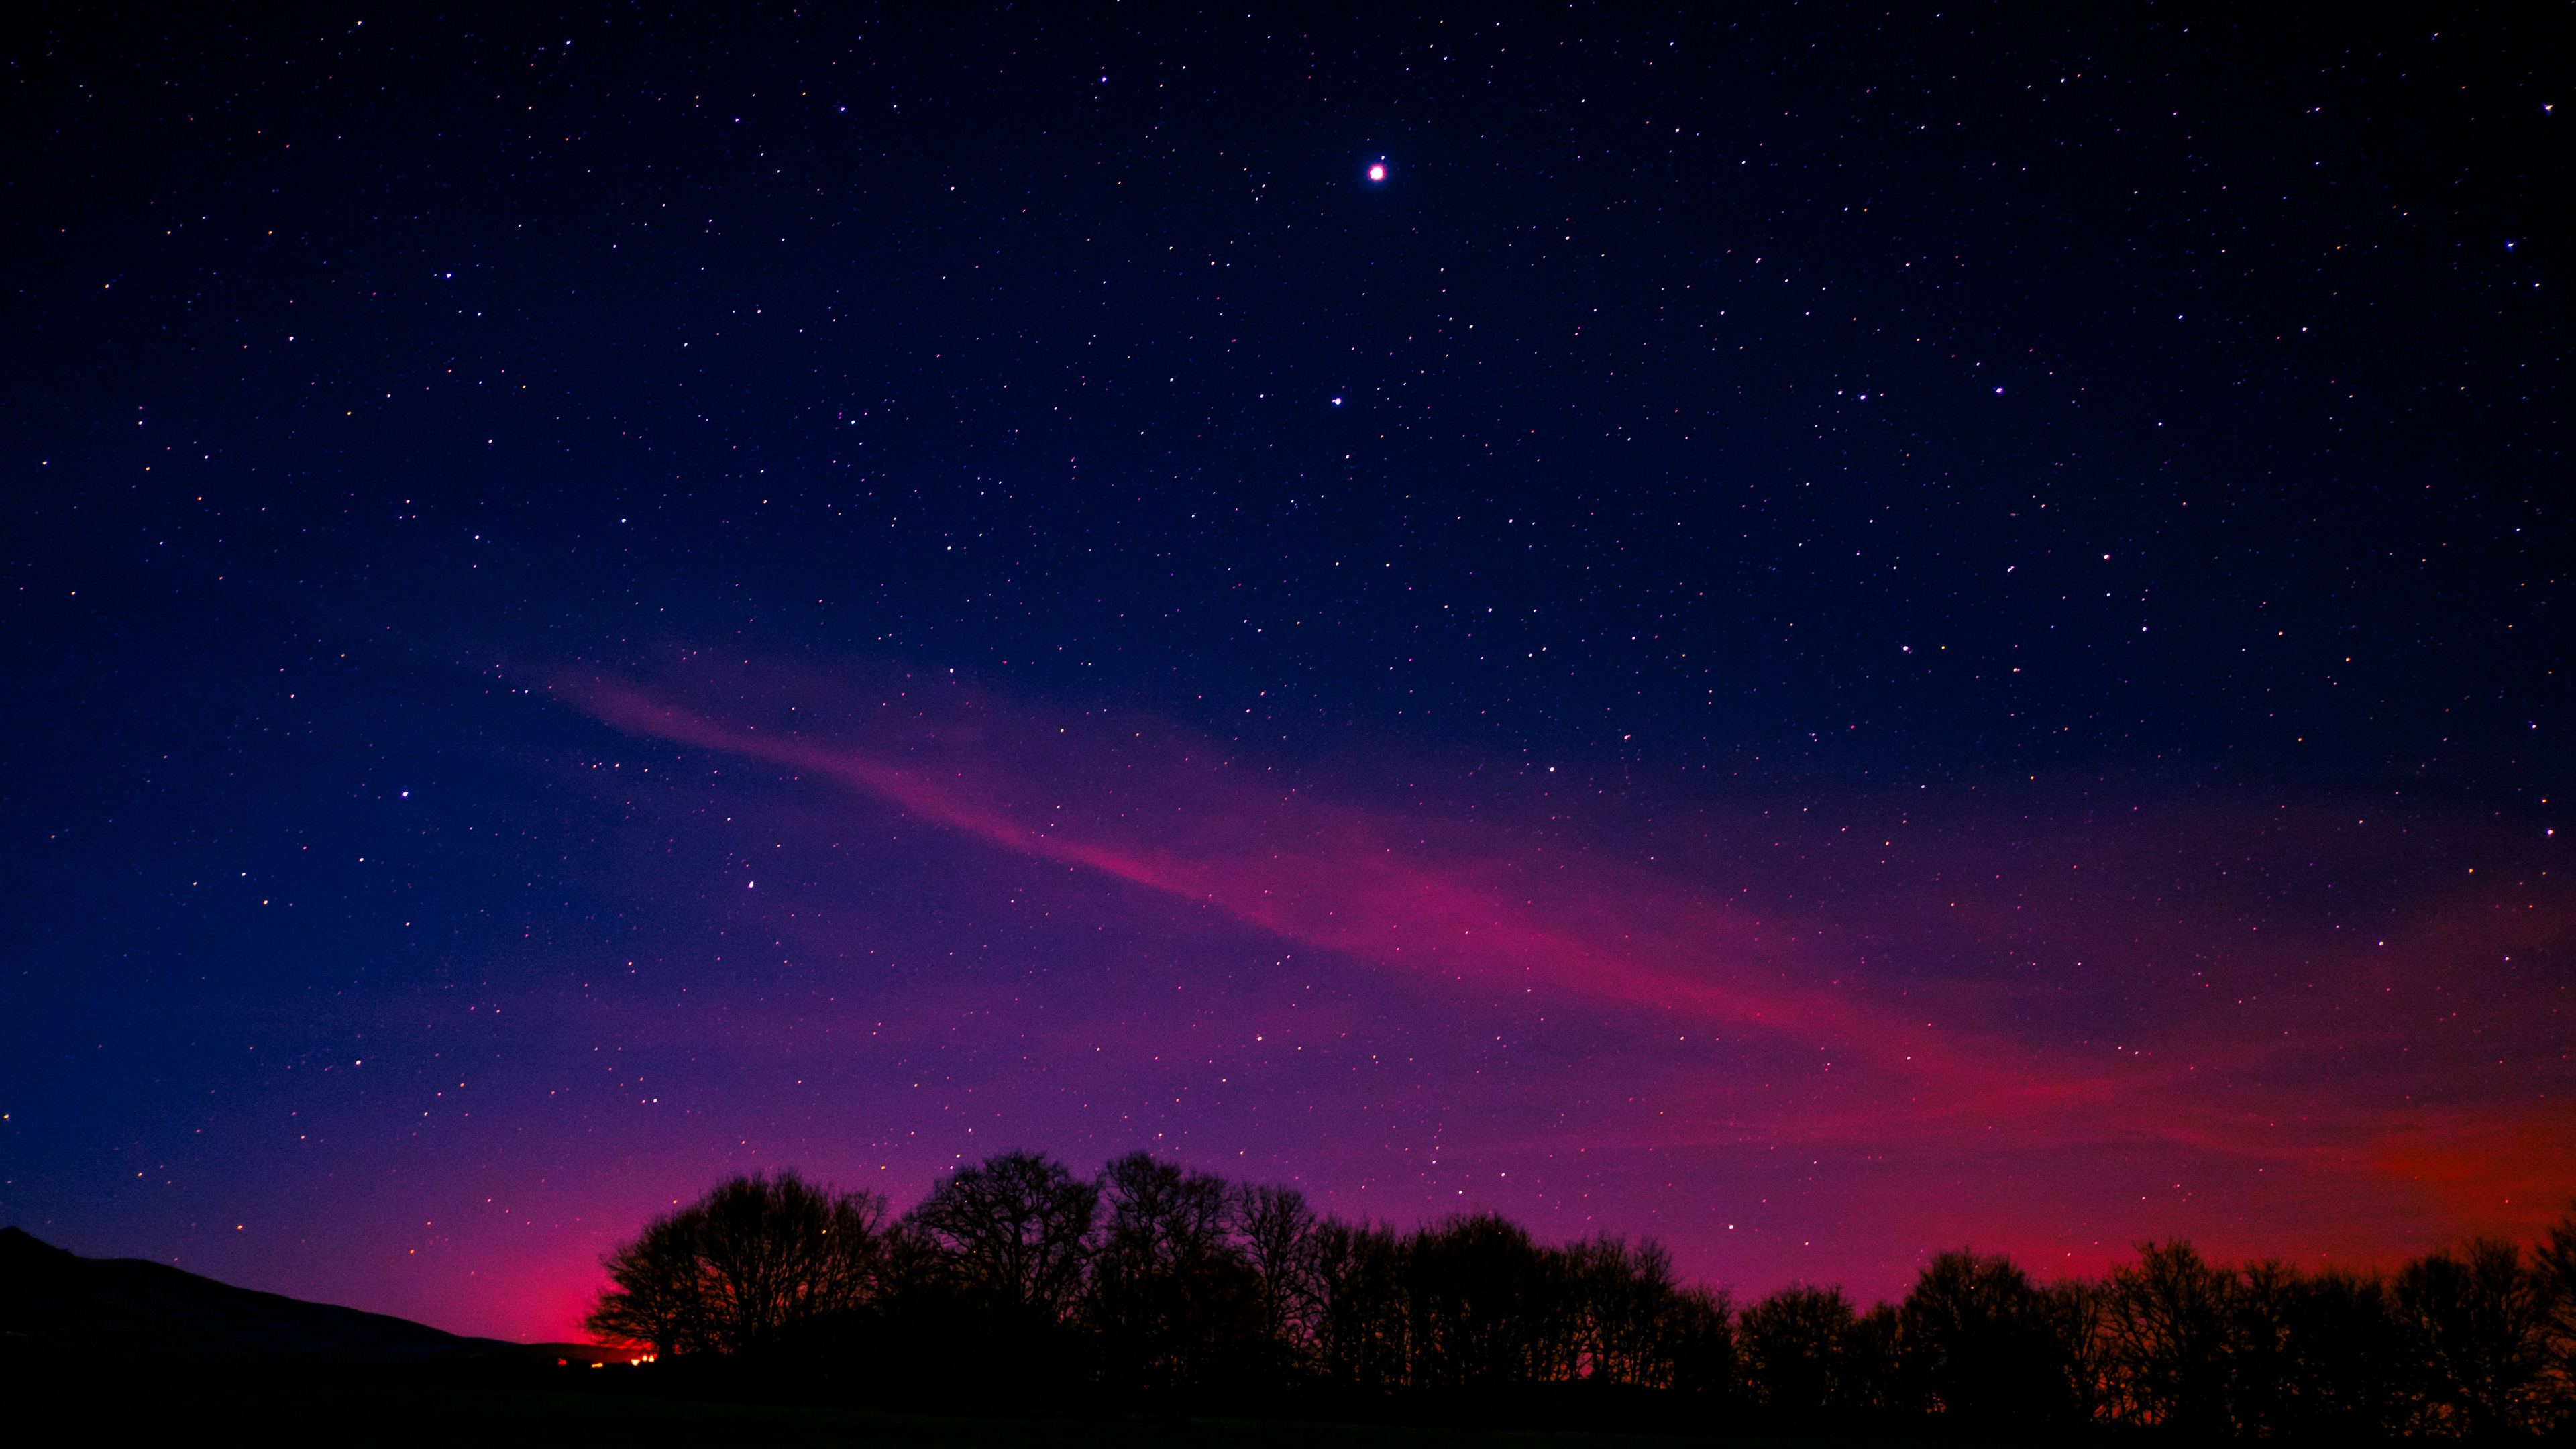 minimal night pink aurora long exposure 5k 1540142970 - Minimal Night Pink Aurora Long Exposure 5k - sky wallpapers, pink wallpapers, northern lights wallpapers, long exposure wallpapers, hd-wallpapers, aurora wallpapers, 5k wallpapers, 4k-wallpapers